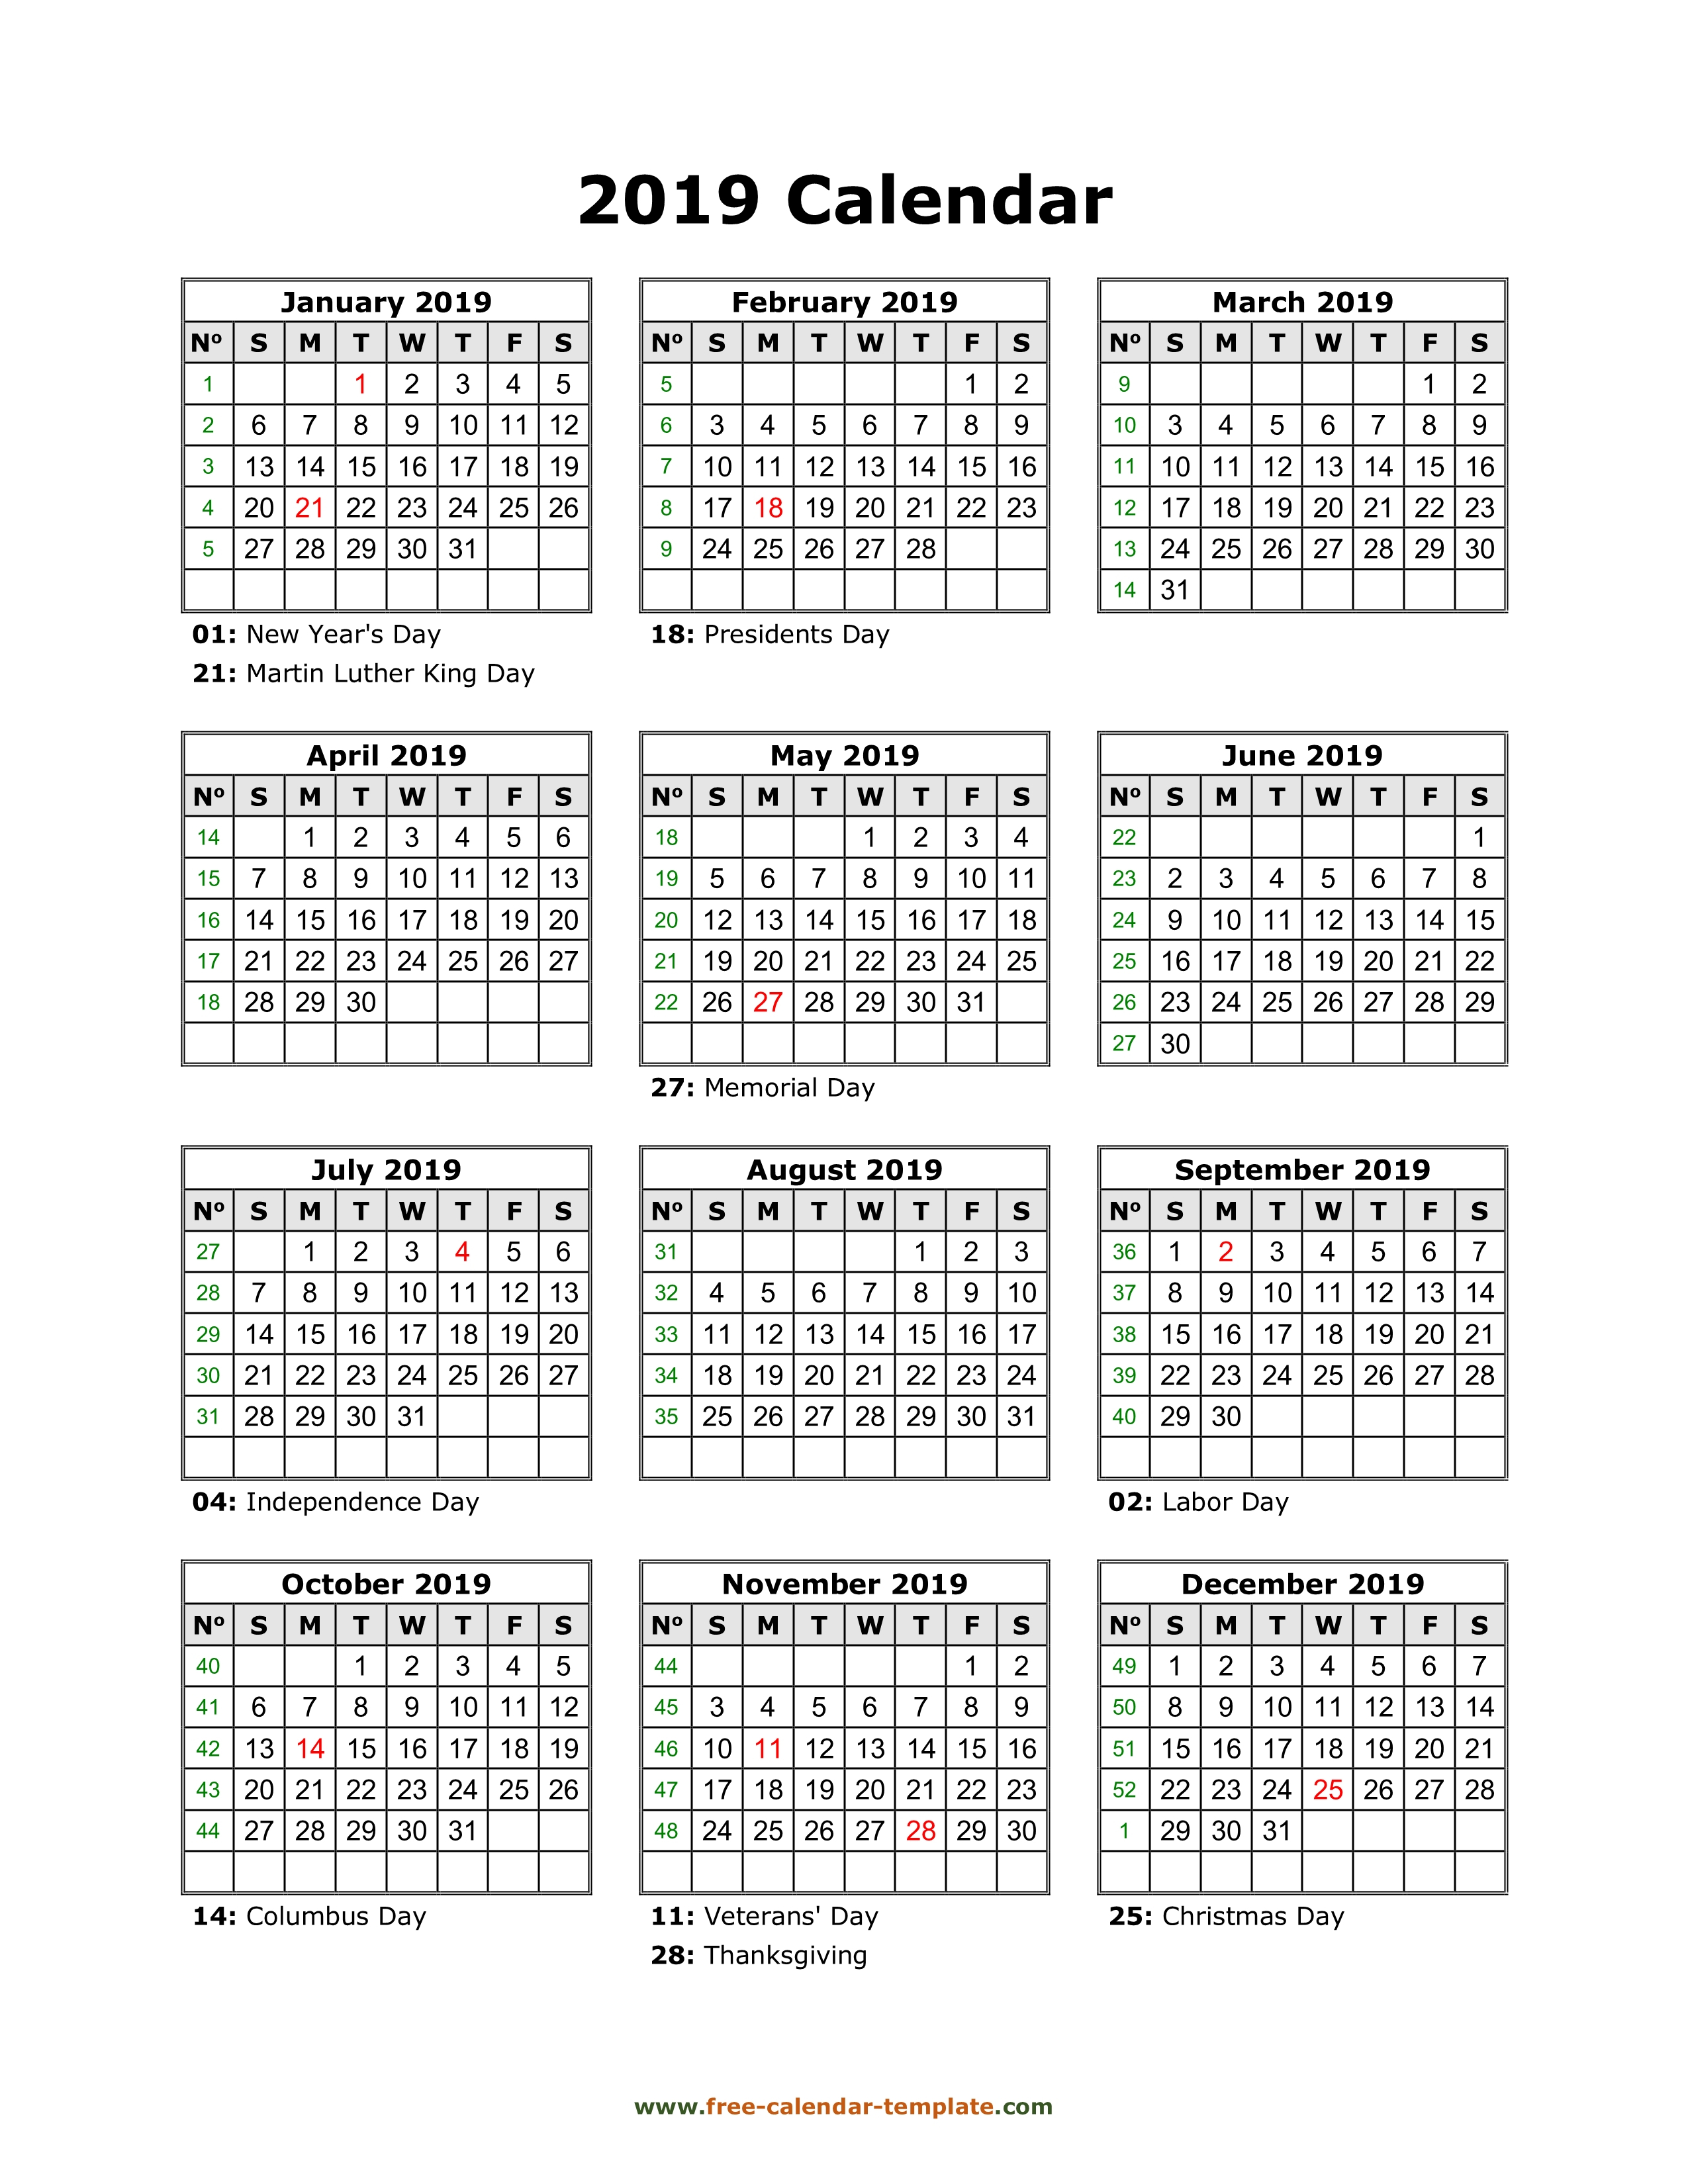 Yearly Printable Calendar 2019 With Holidays | Free-Calendar